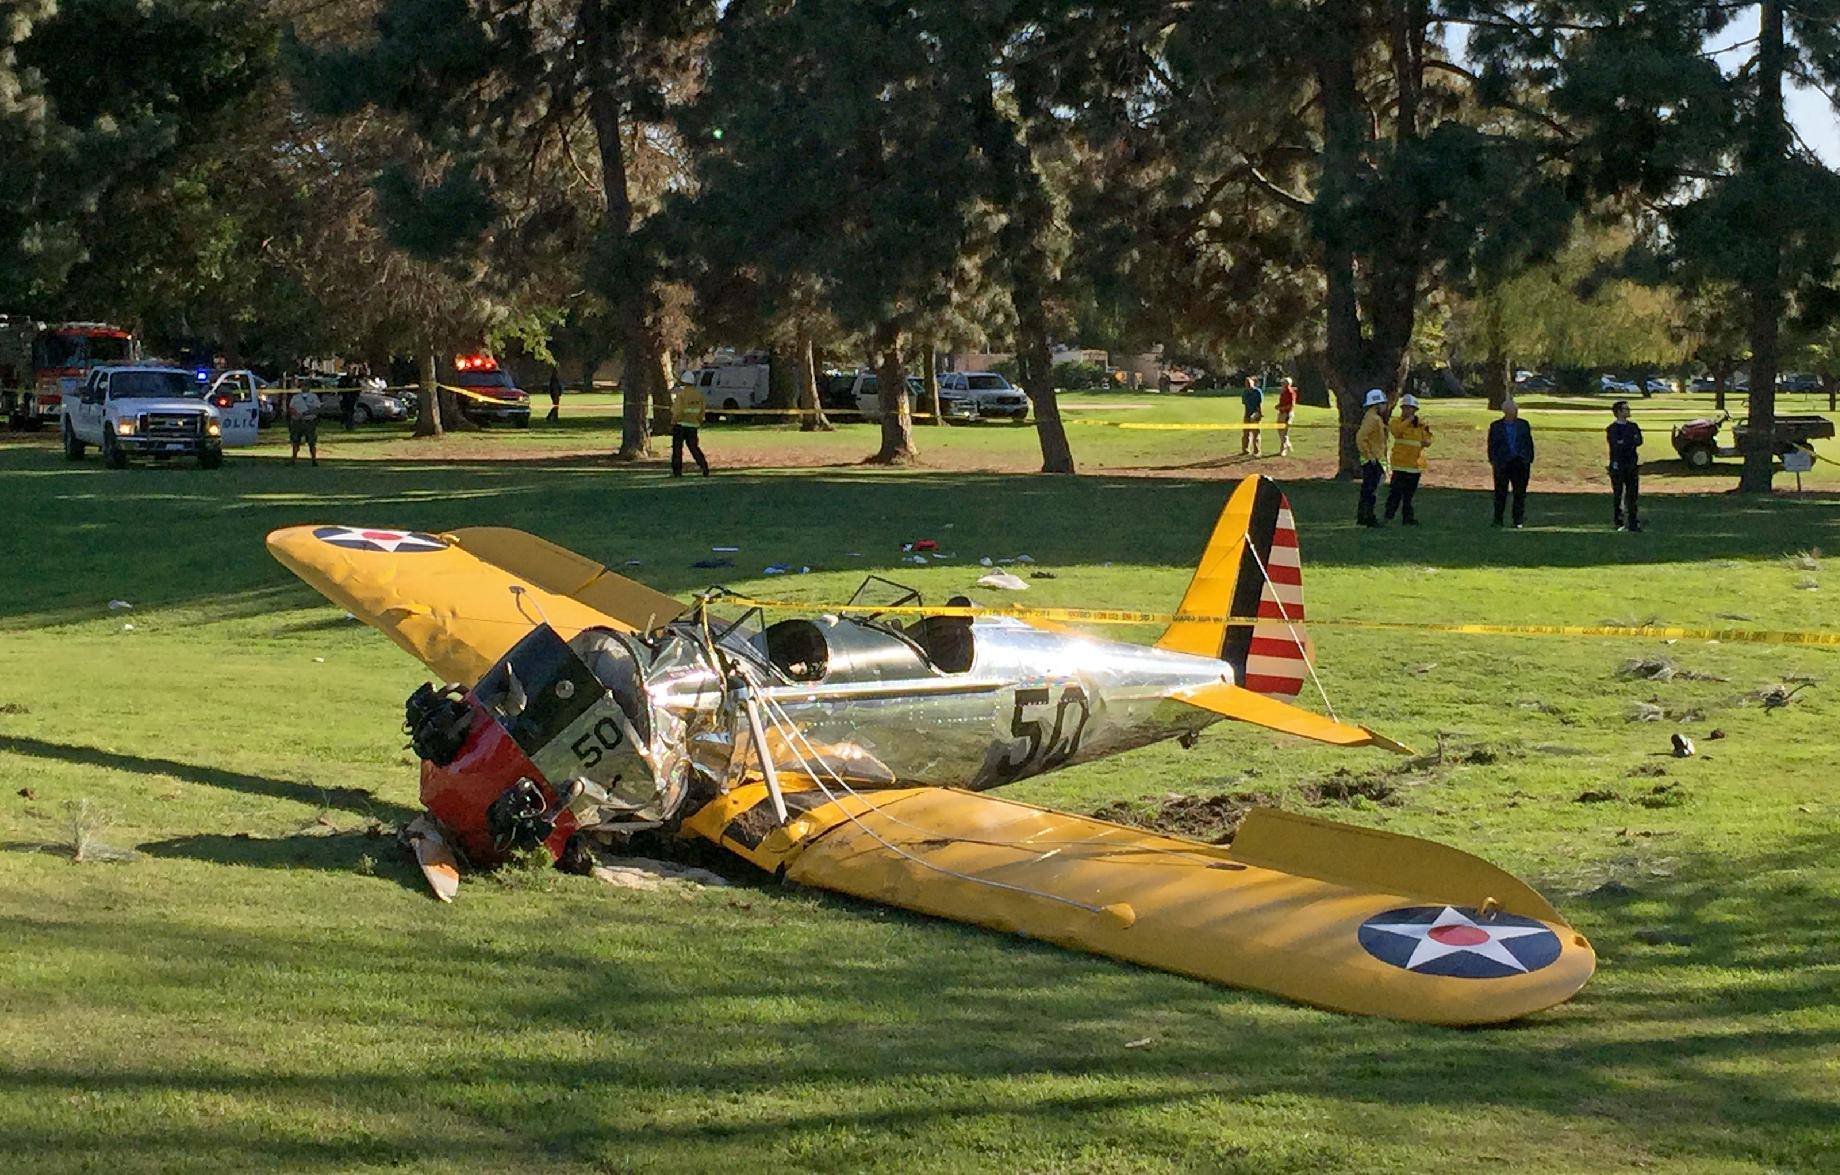 AP source: Harrison Ford crash-lands plane on golf course